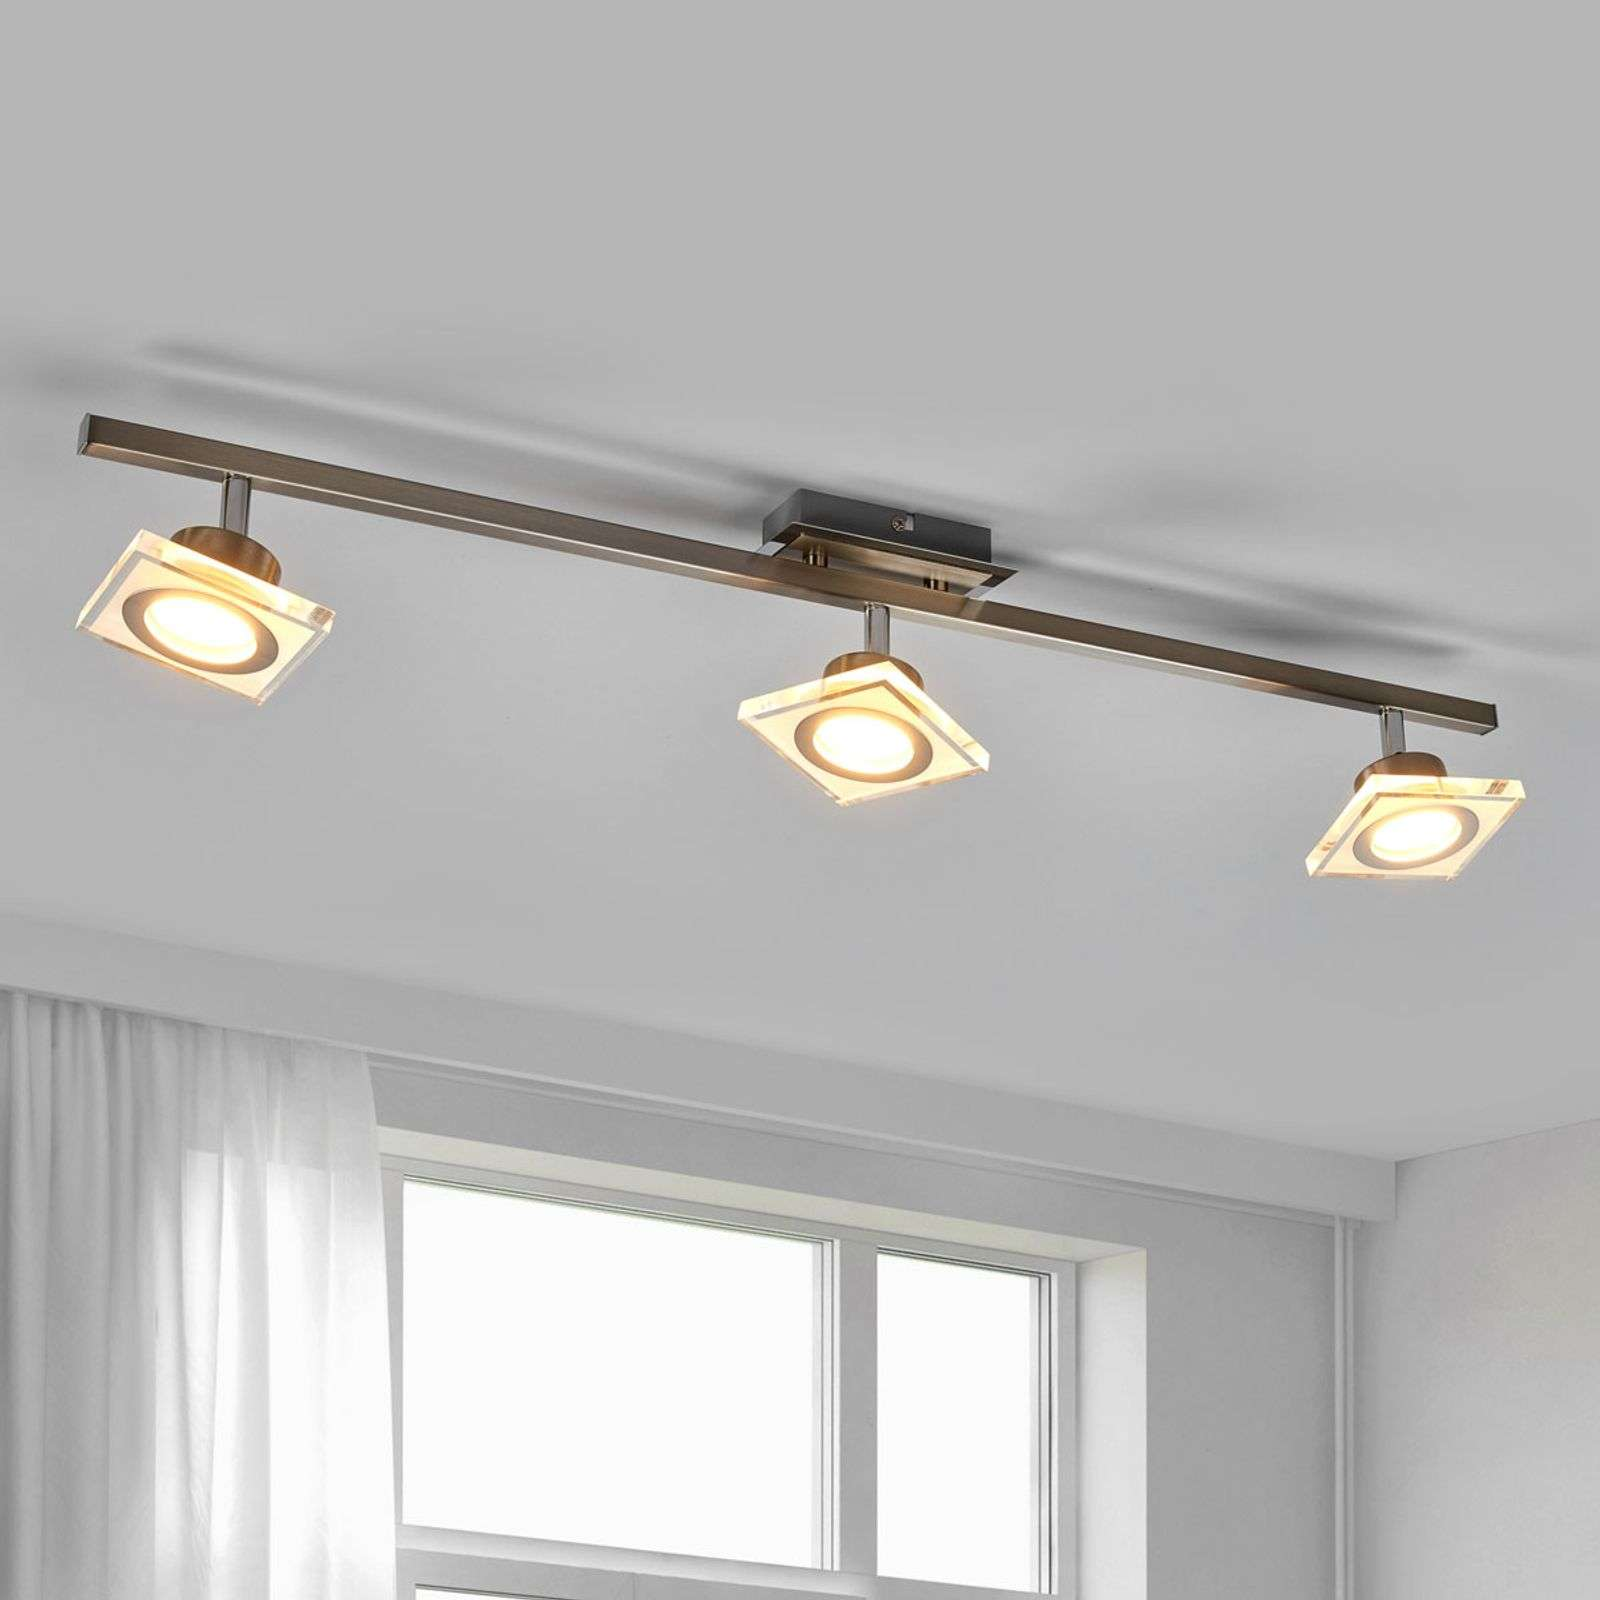 Plafonnier avec spots LED Kovi dimmable